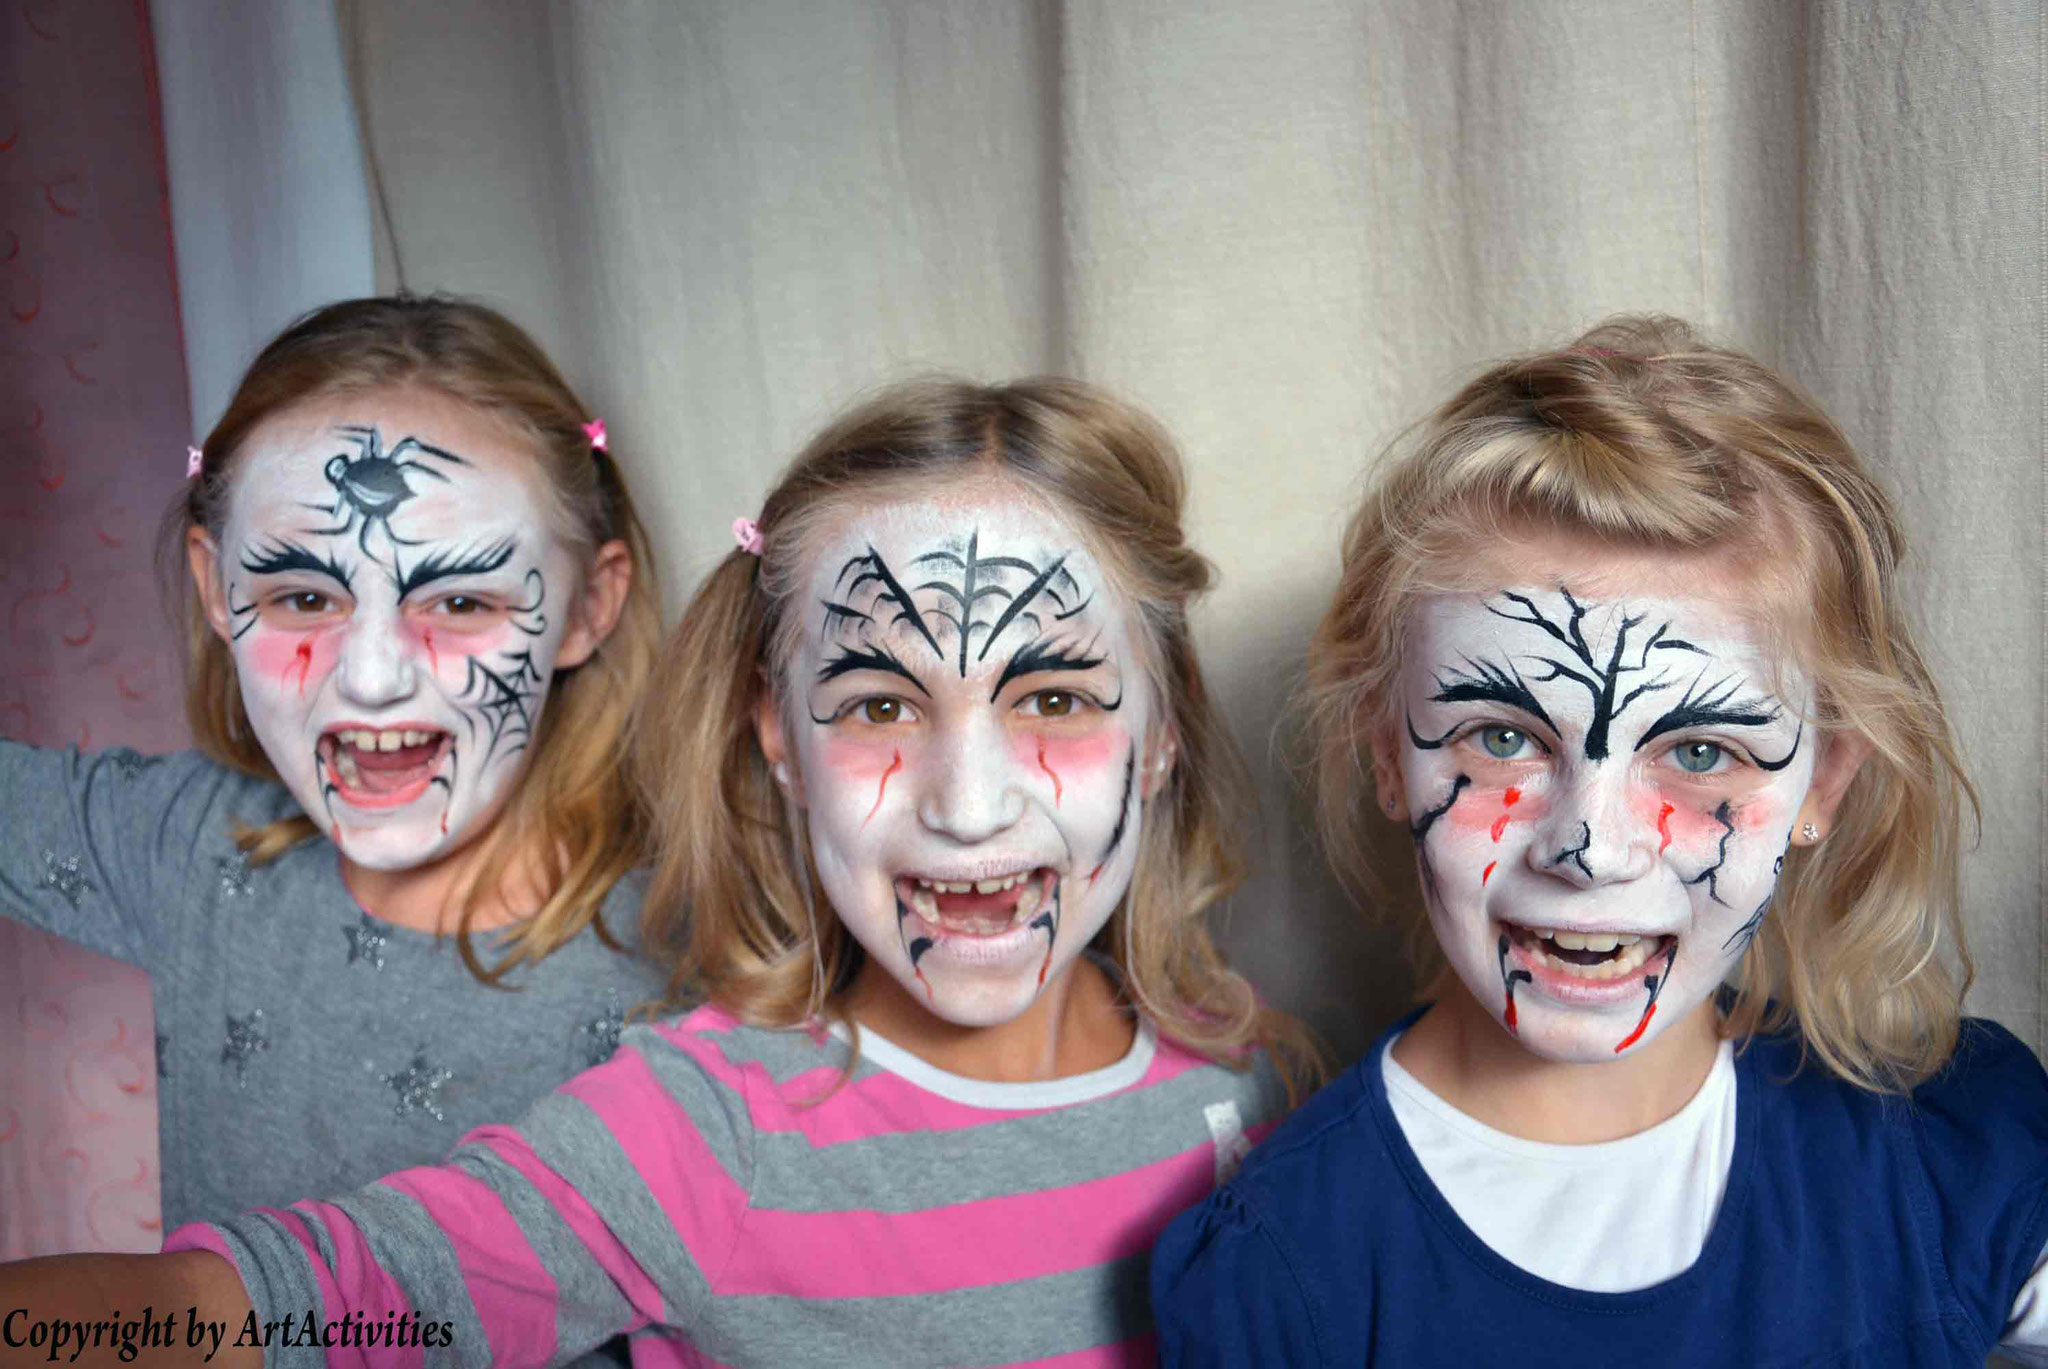 Kinderschminken/Facepainting Helloween